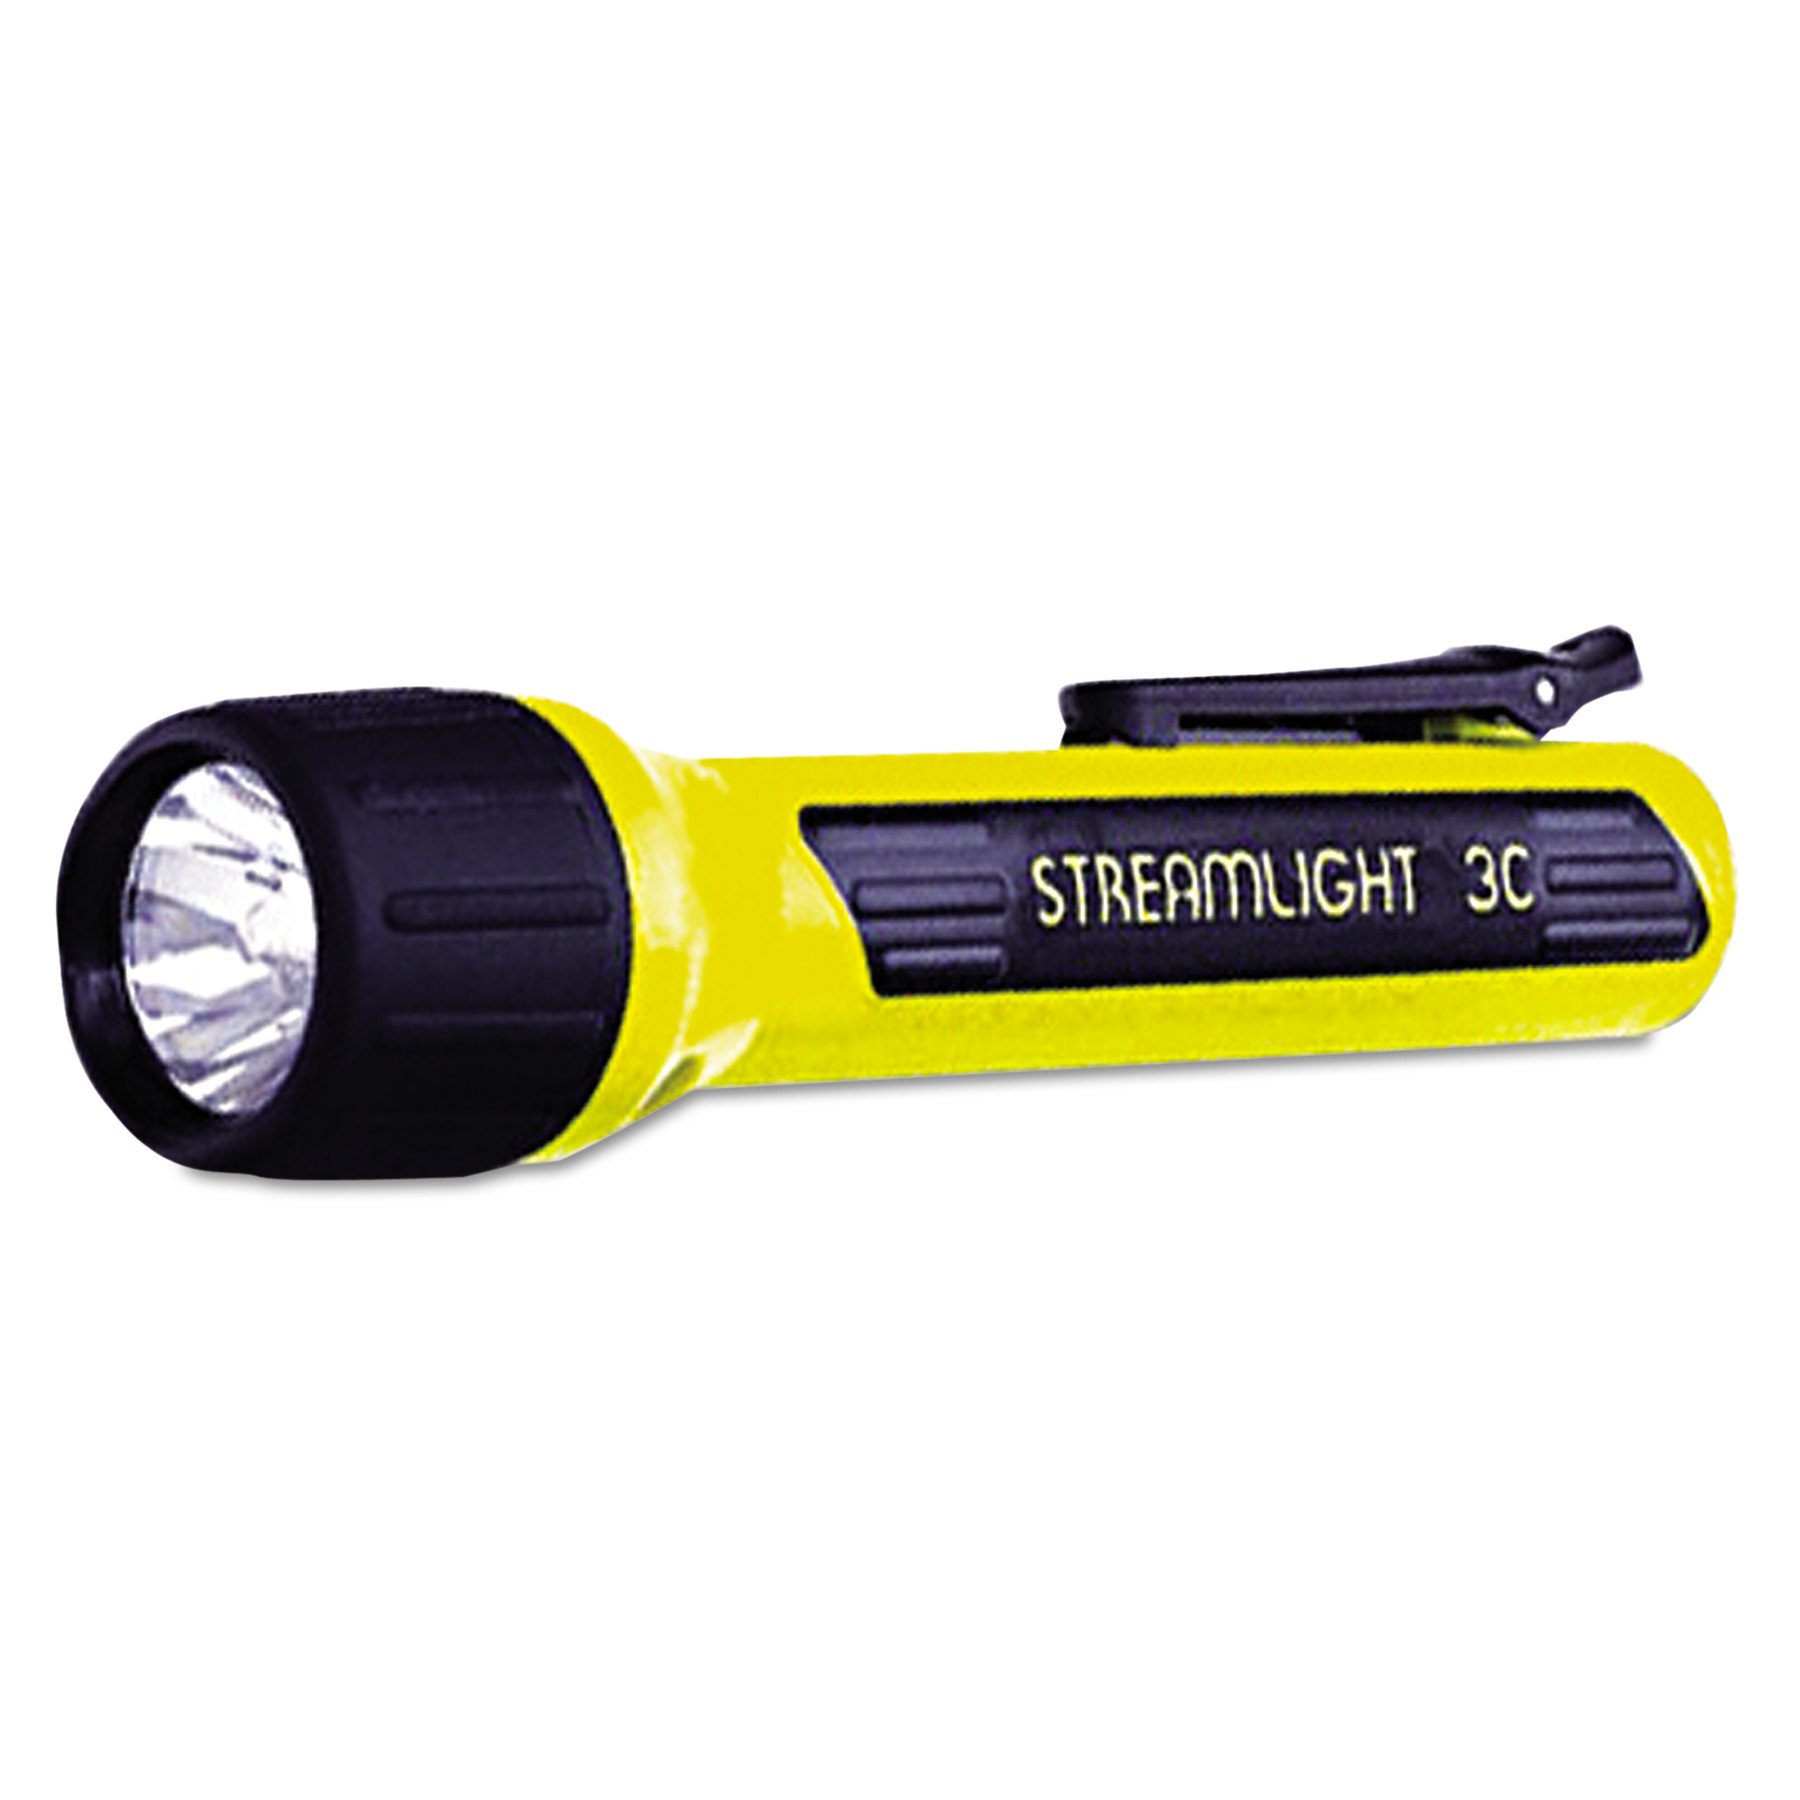 Streamlight ProPolymer LED Flashlight, 3C (Sold Separately), Black by Streamlight Inc